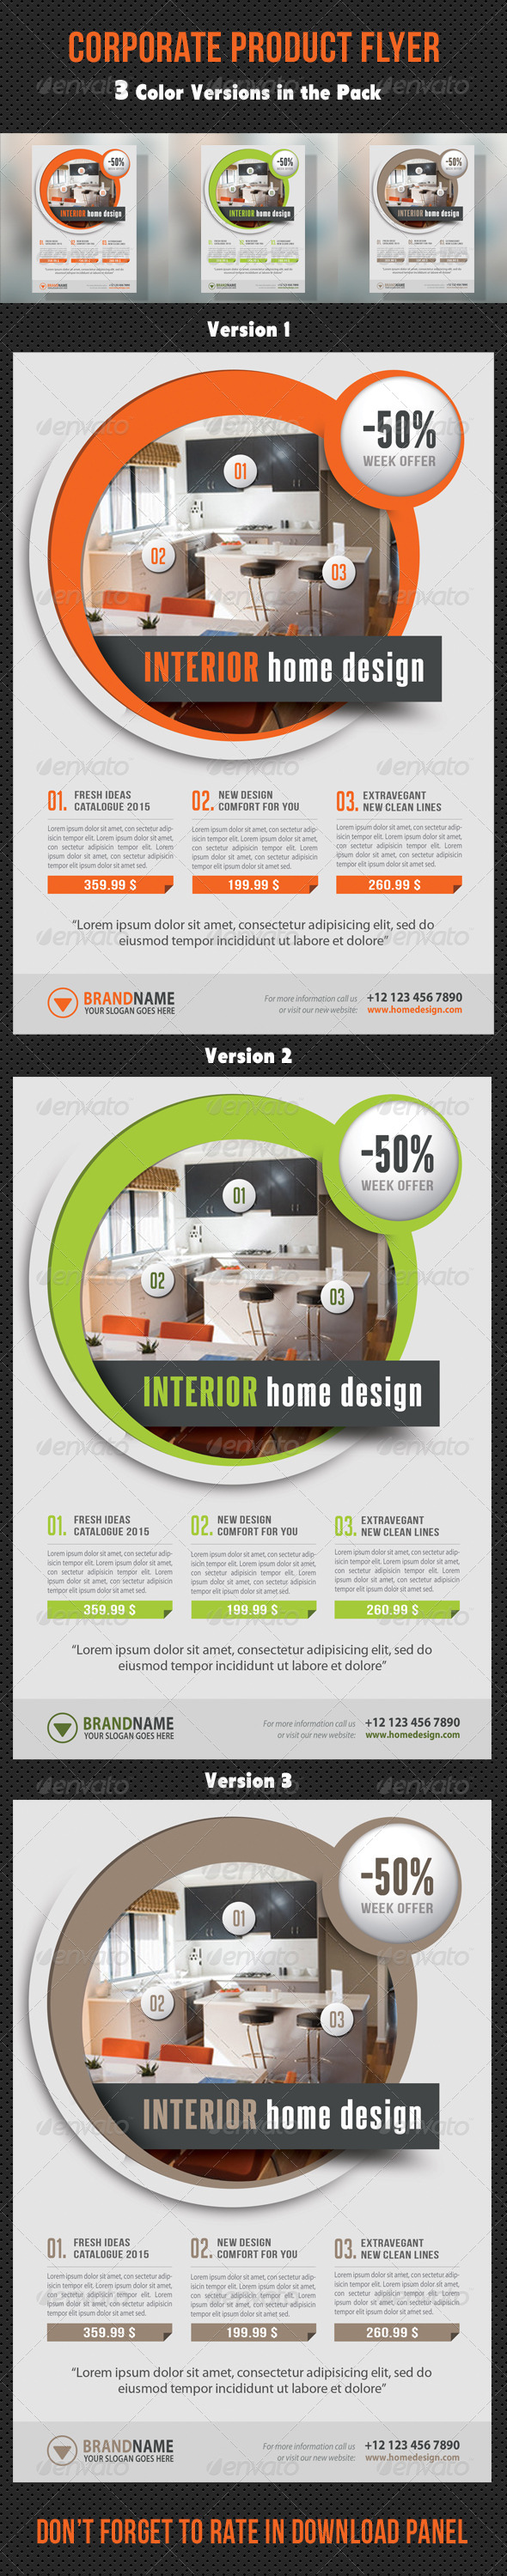 GraphicRiver Corporate Product Flyer 98 8729110